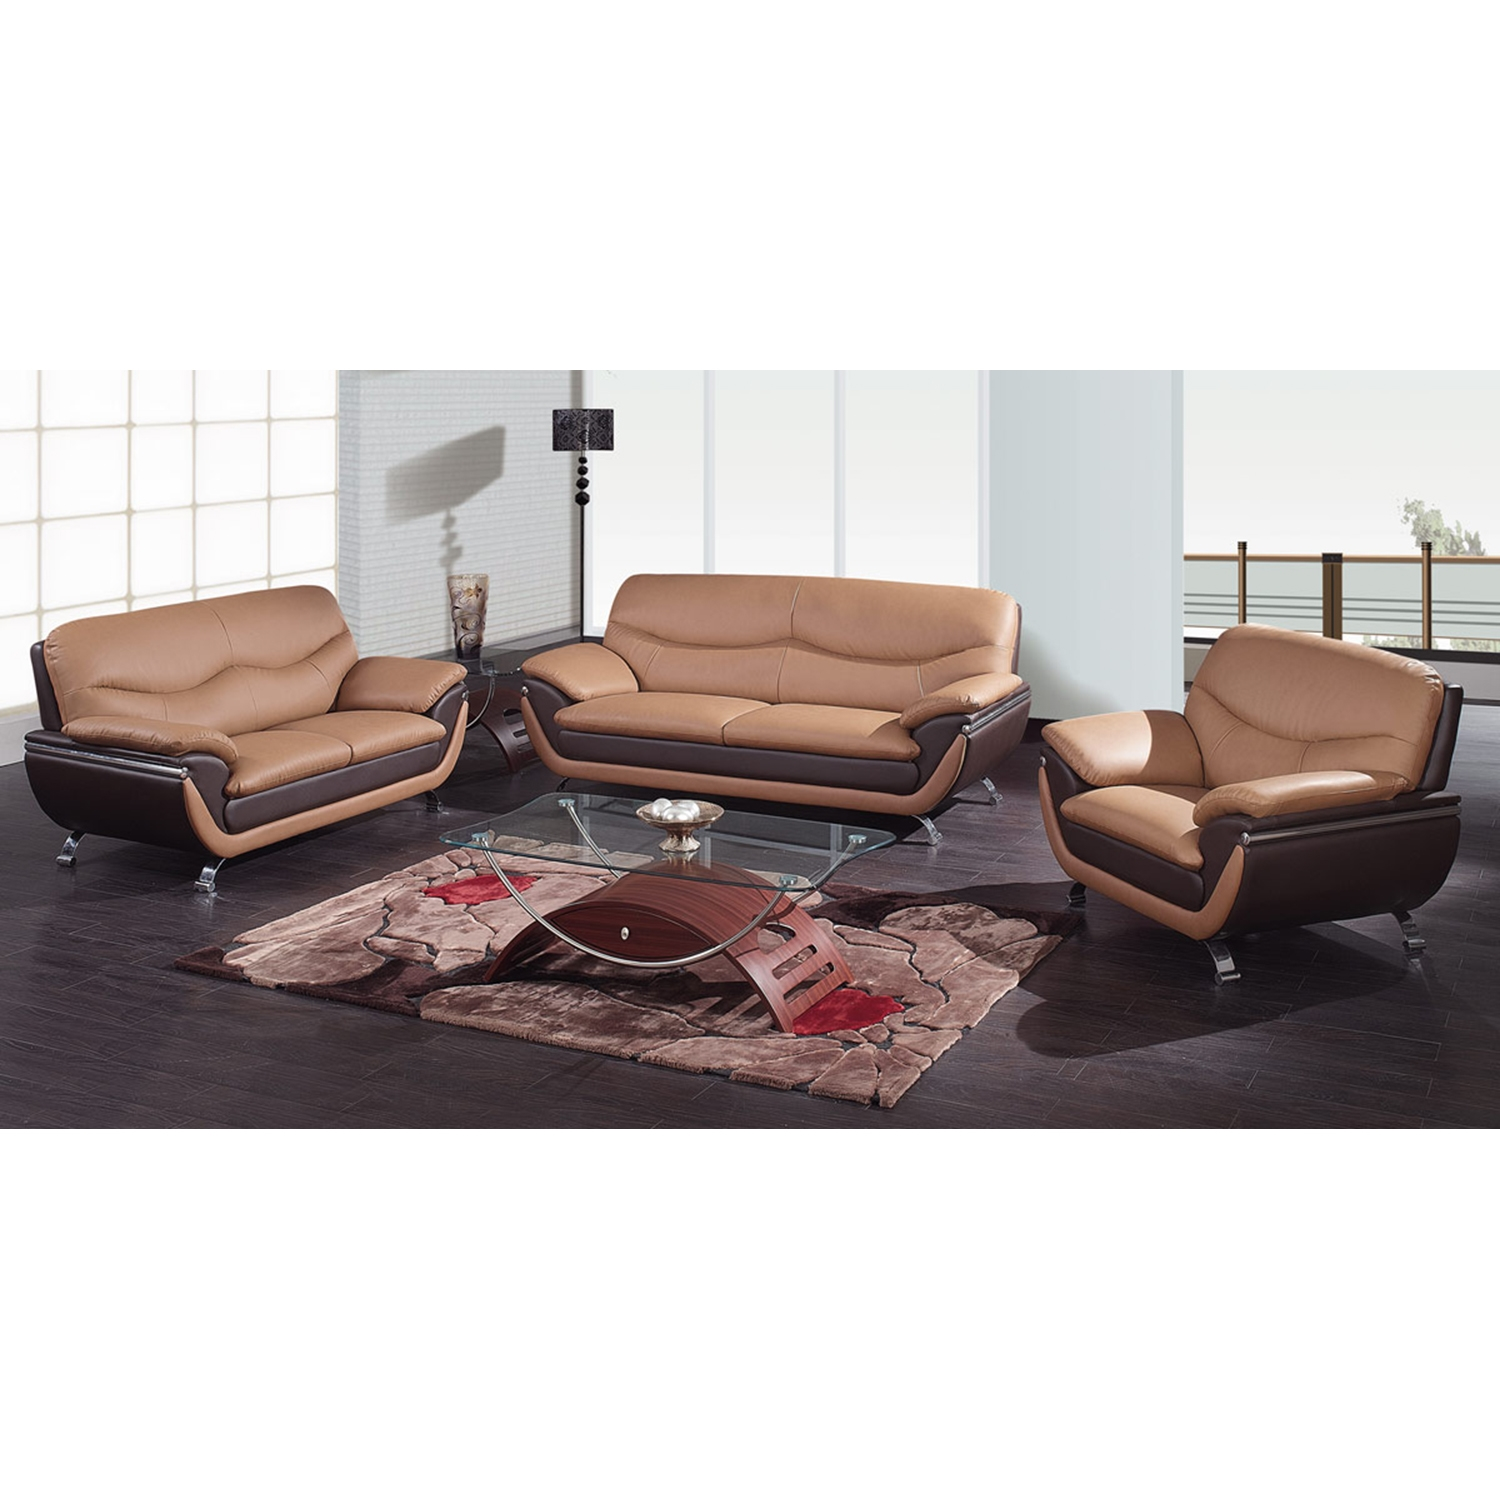 Sofa Set in Light Brown and Dark Brown